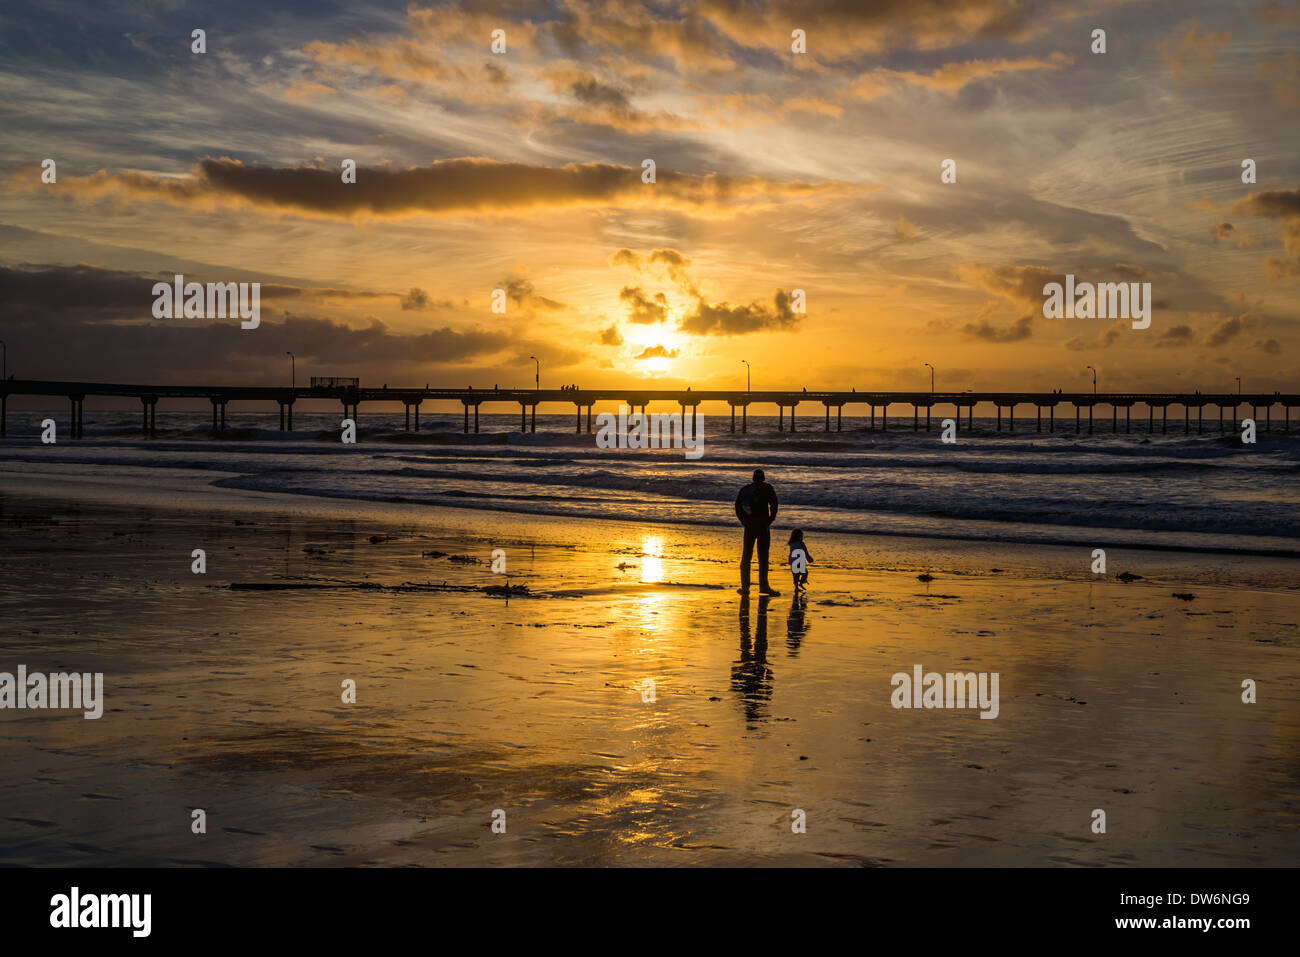 Ocean Beach and the Ocean Beach Pier with vibrant sunset. San Diego, California, United States. - Stock Image